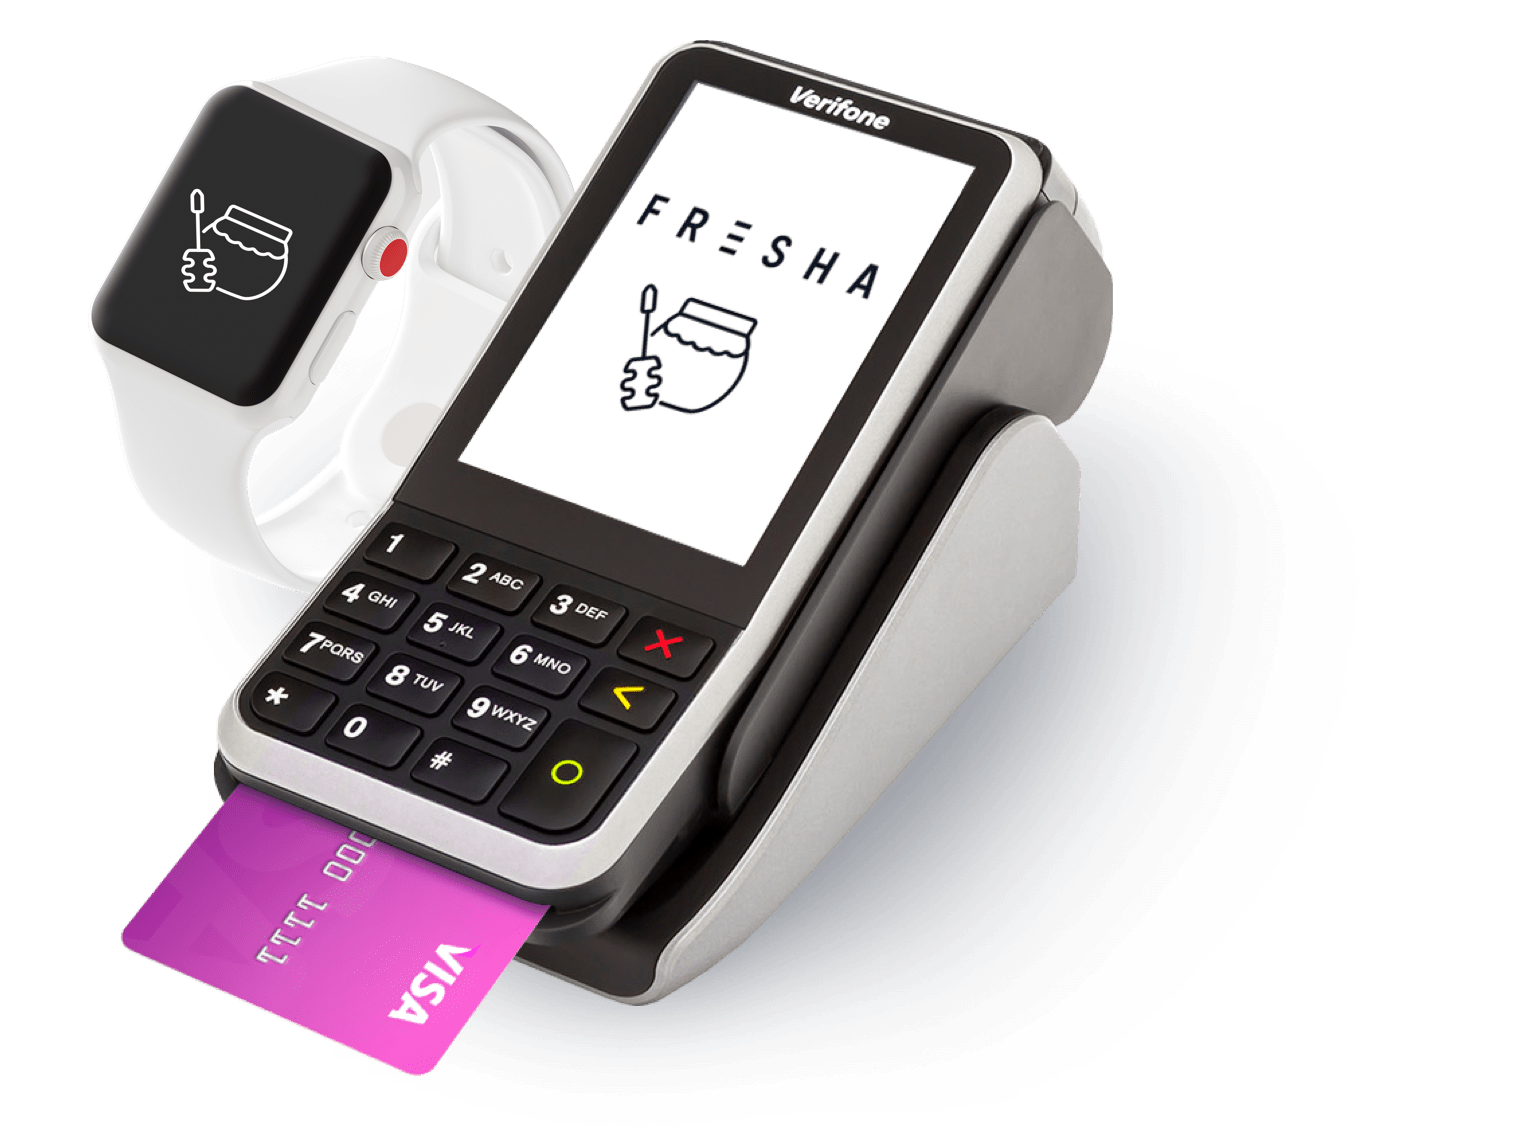 Waxing Salon payment terminal, payment processing and online payments solution